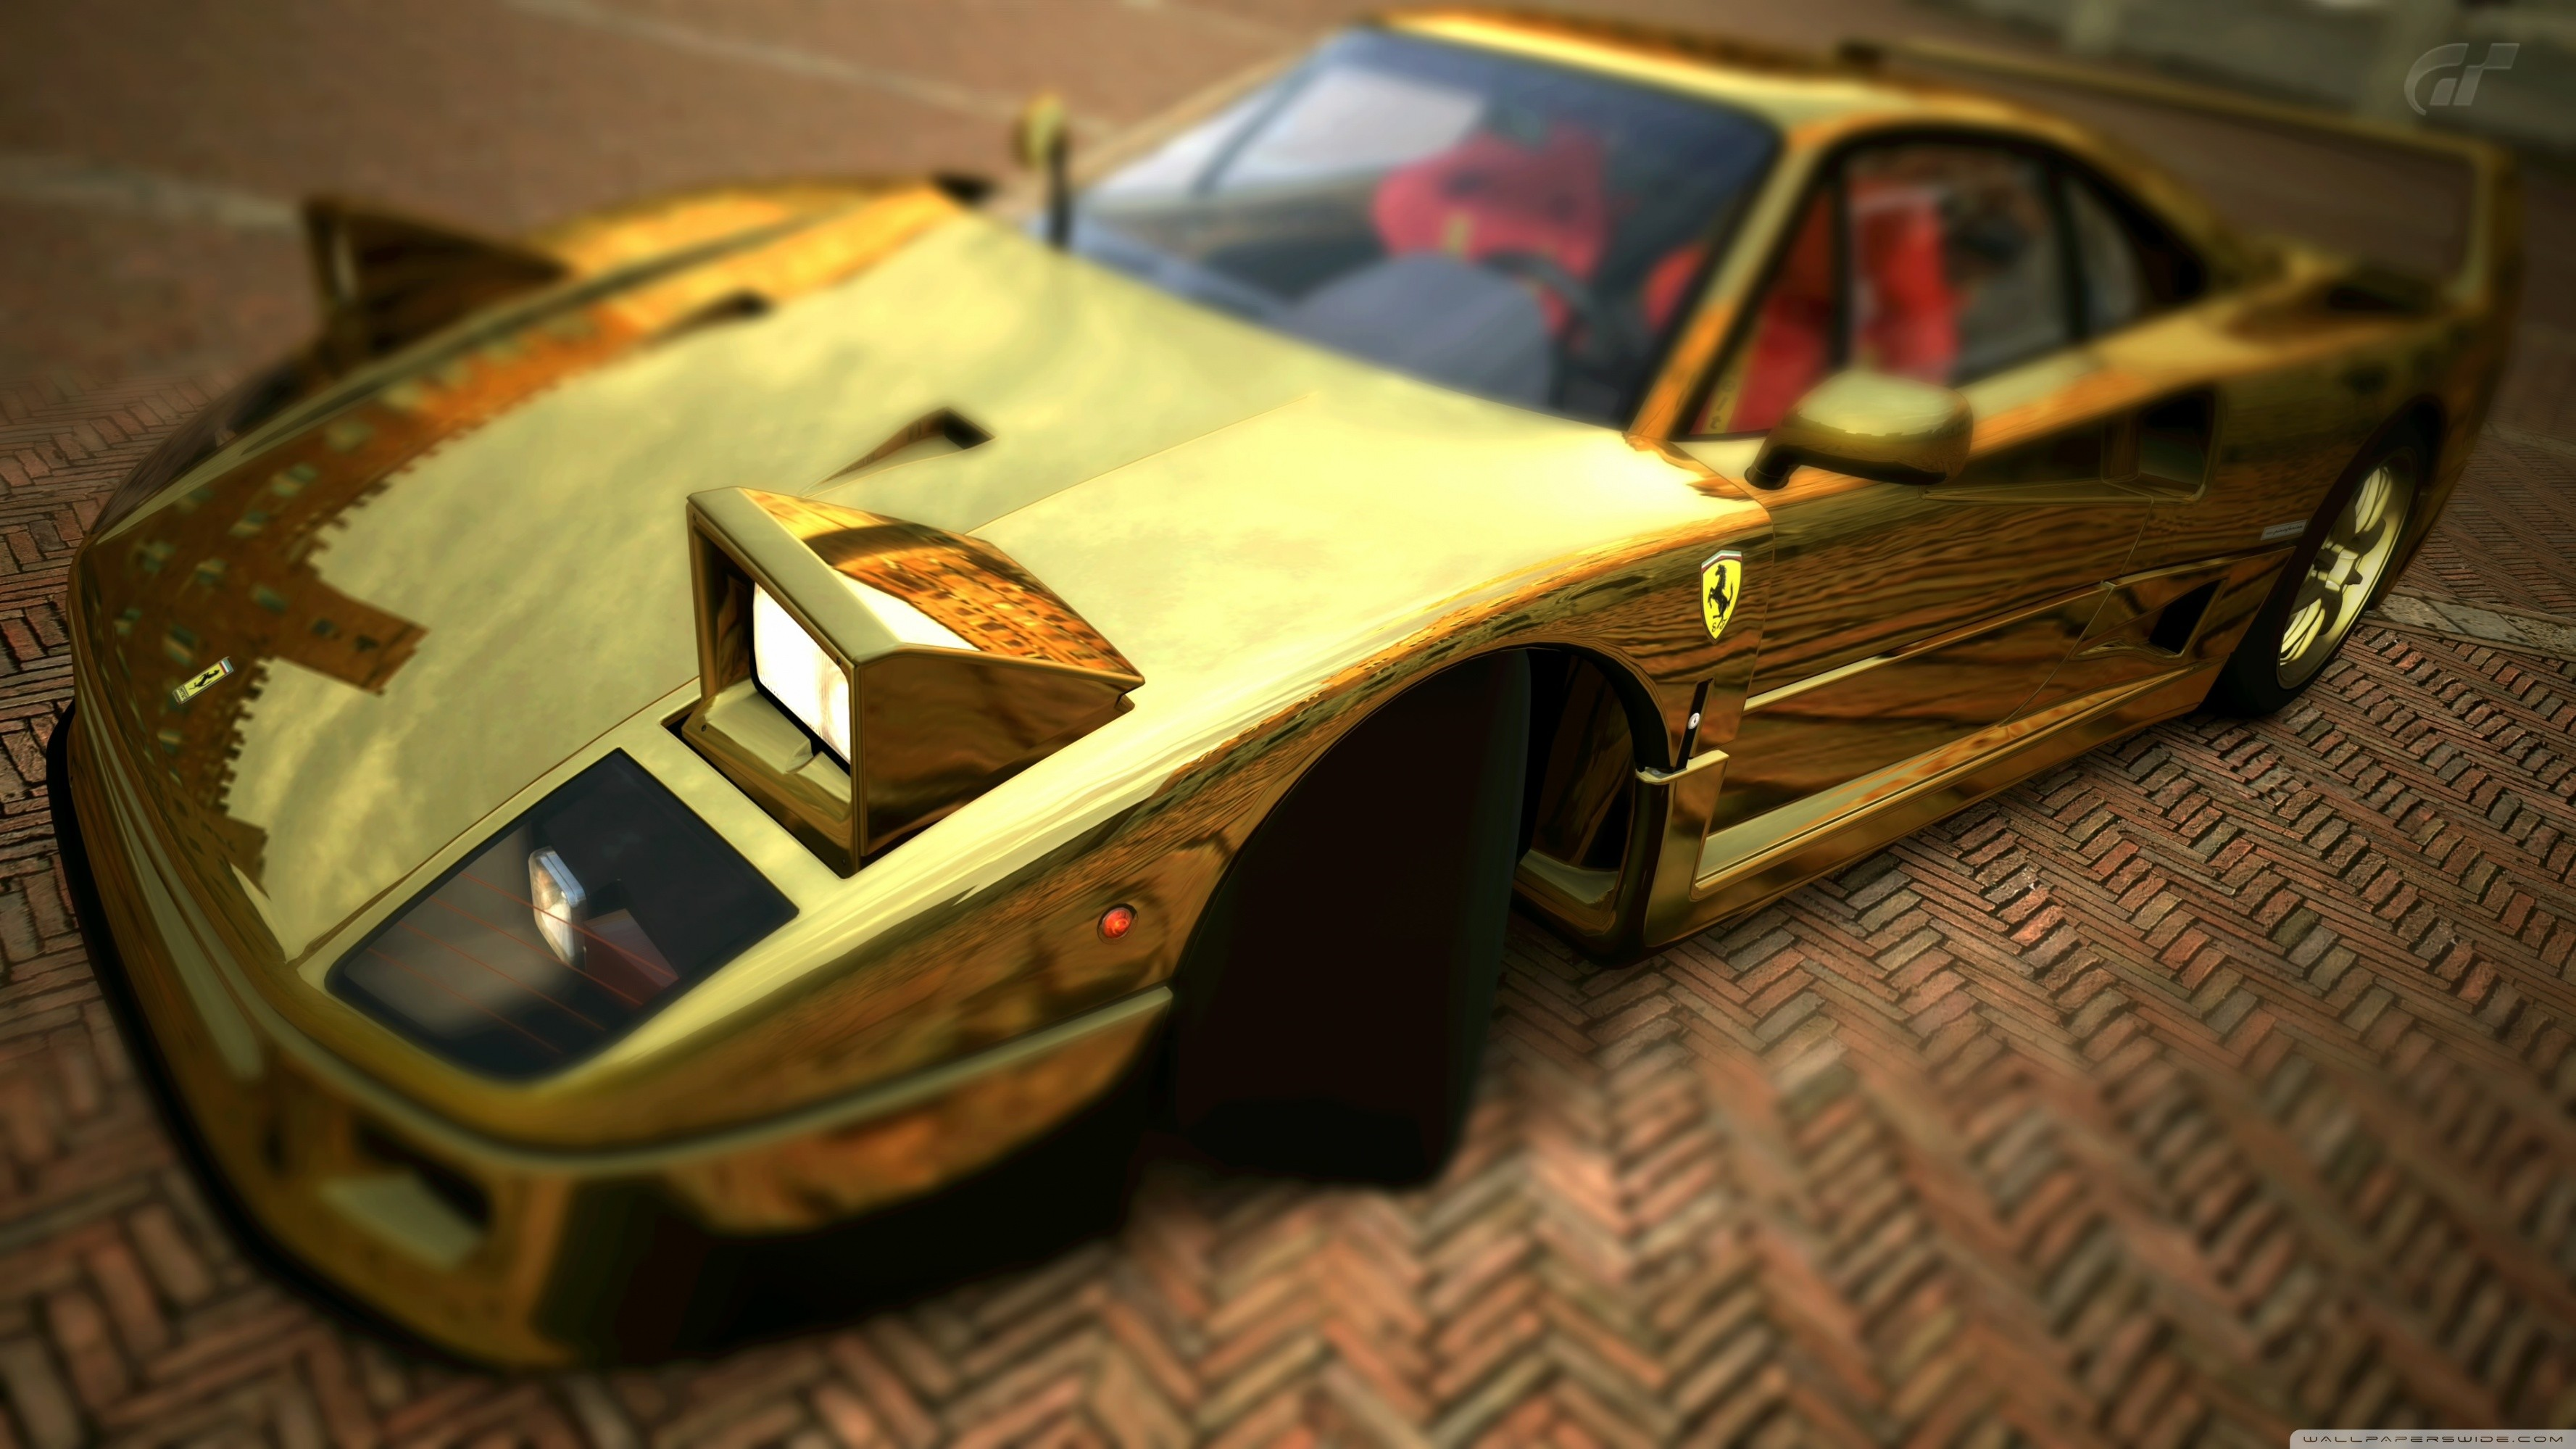 … ferrari f40 gold hd desktop wallpaper high definition mobile …